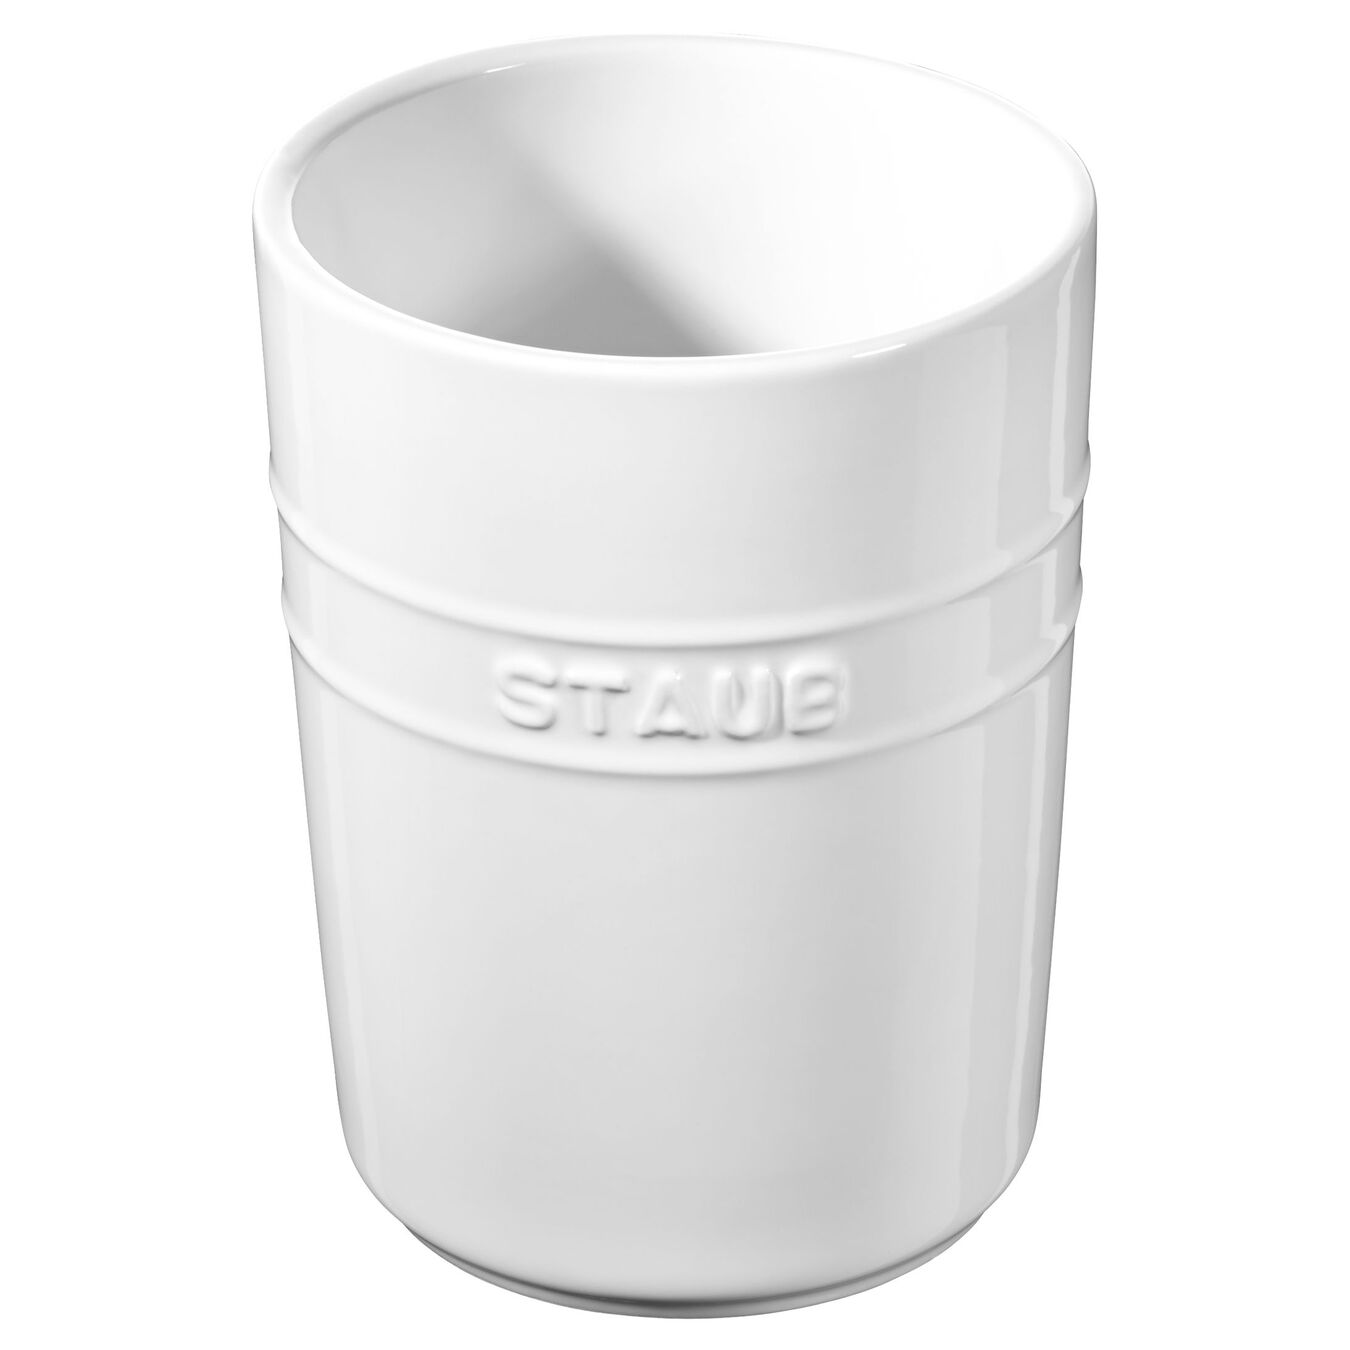 Utensil Holder - White,,large 1